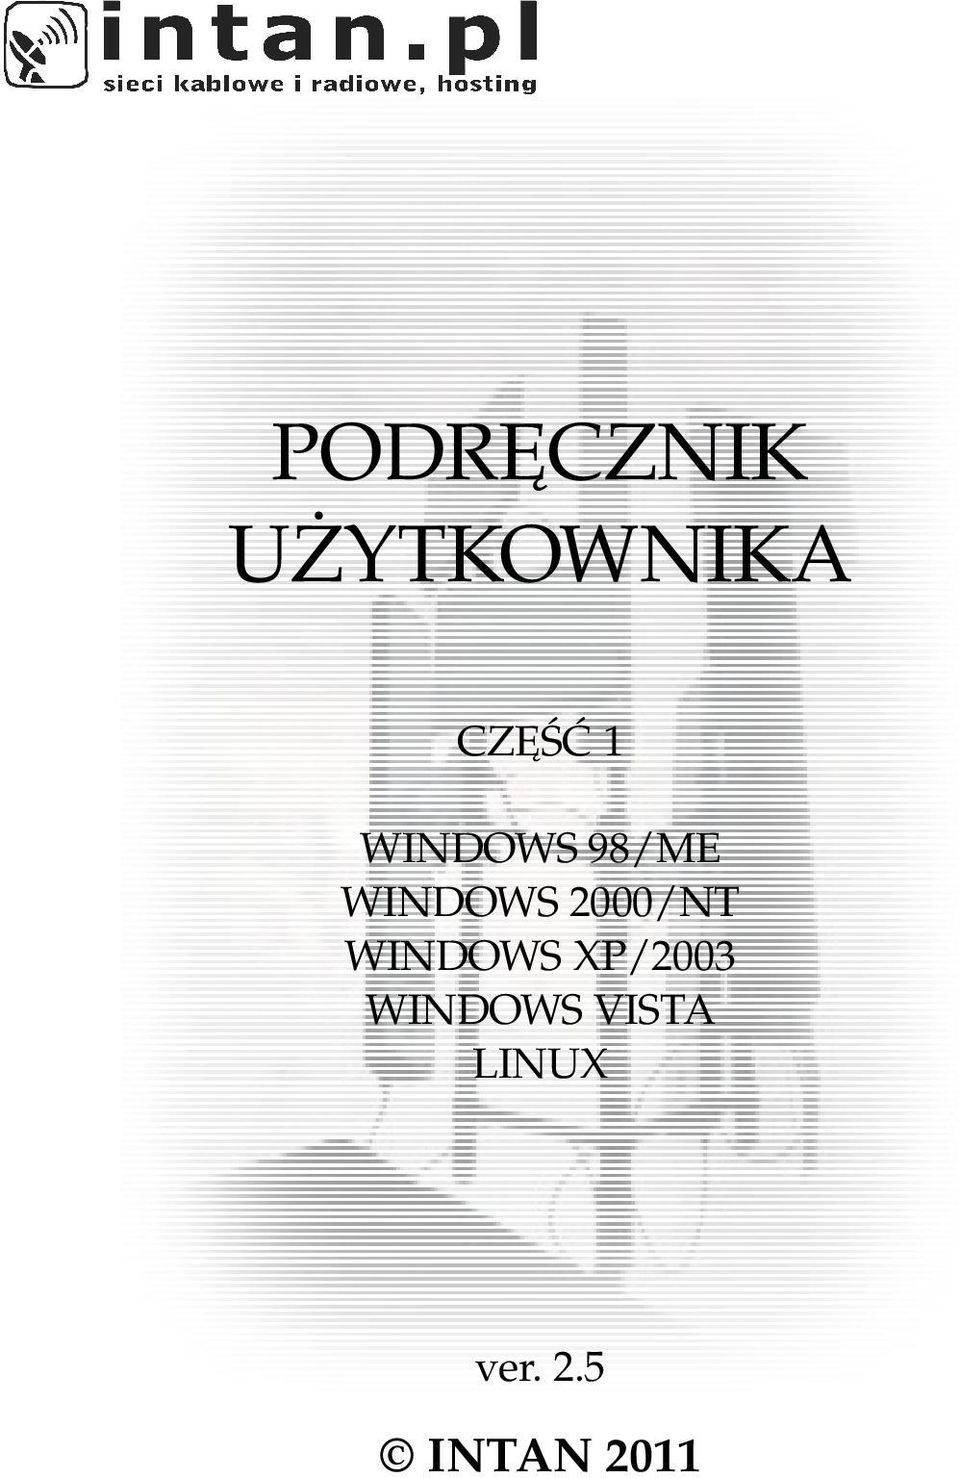 2000/NT WINDOWS XP/2003